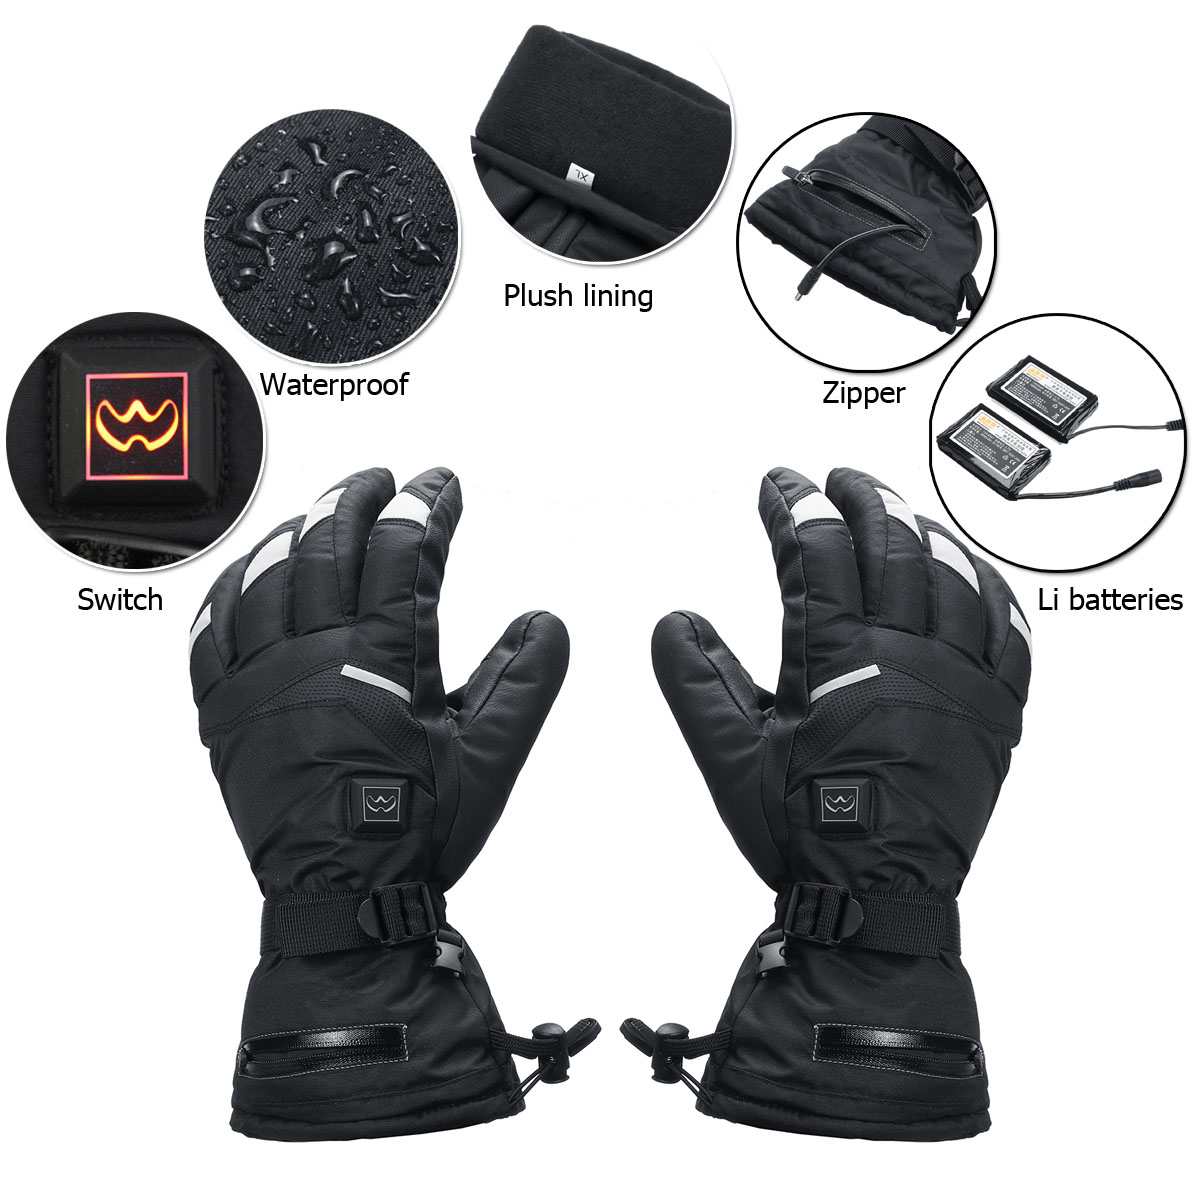 WARMSPACE 3.7V 3600mah Electrically Heated Gloves Motorcycle Winter Warmer Outdoor Skiing